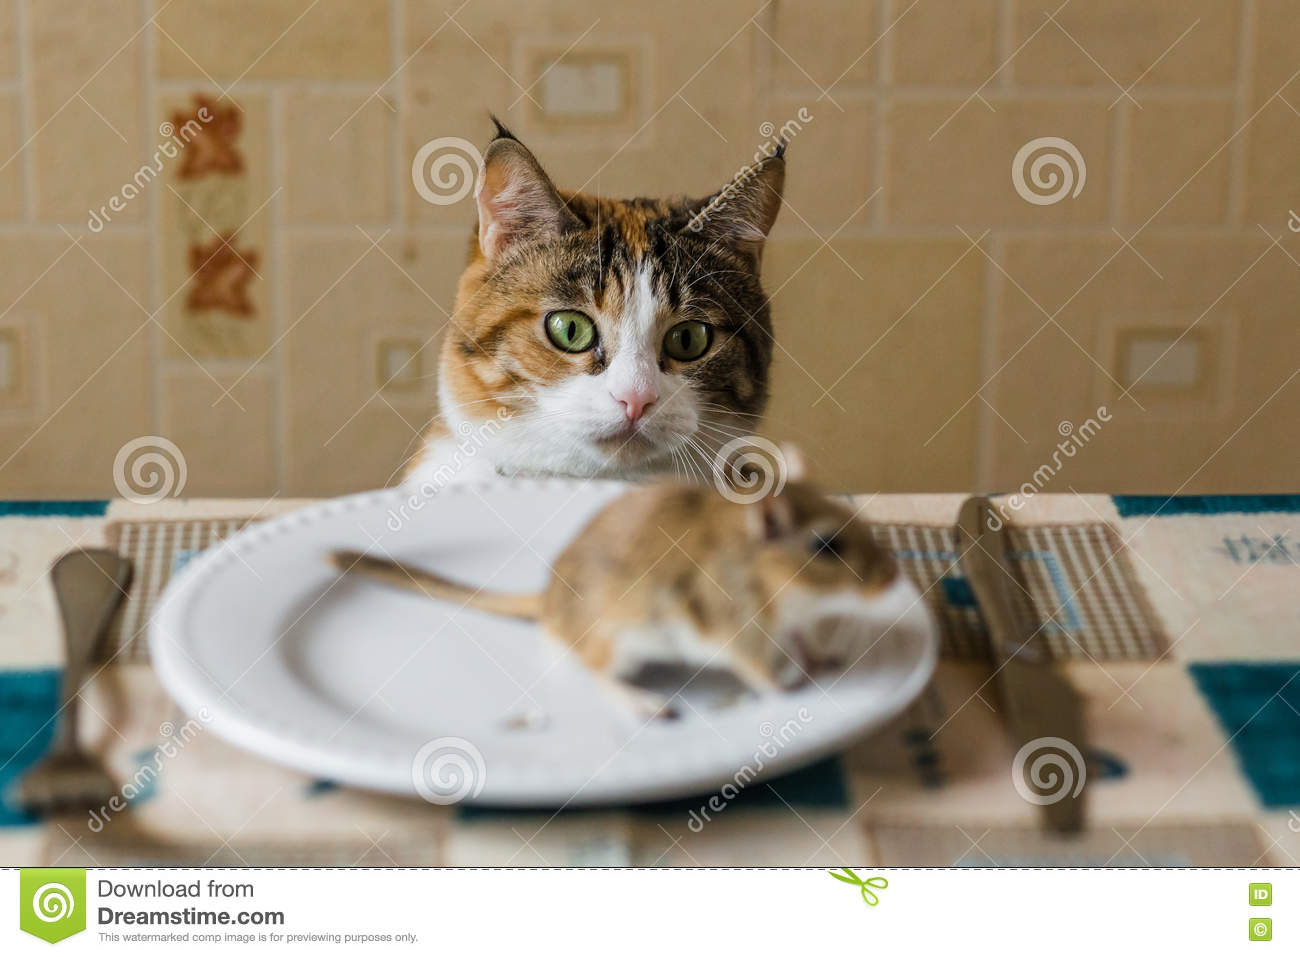 Cat Stealing Food From Plate